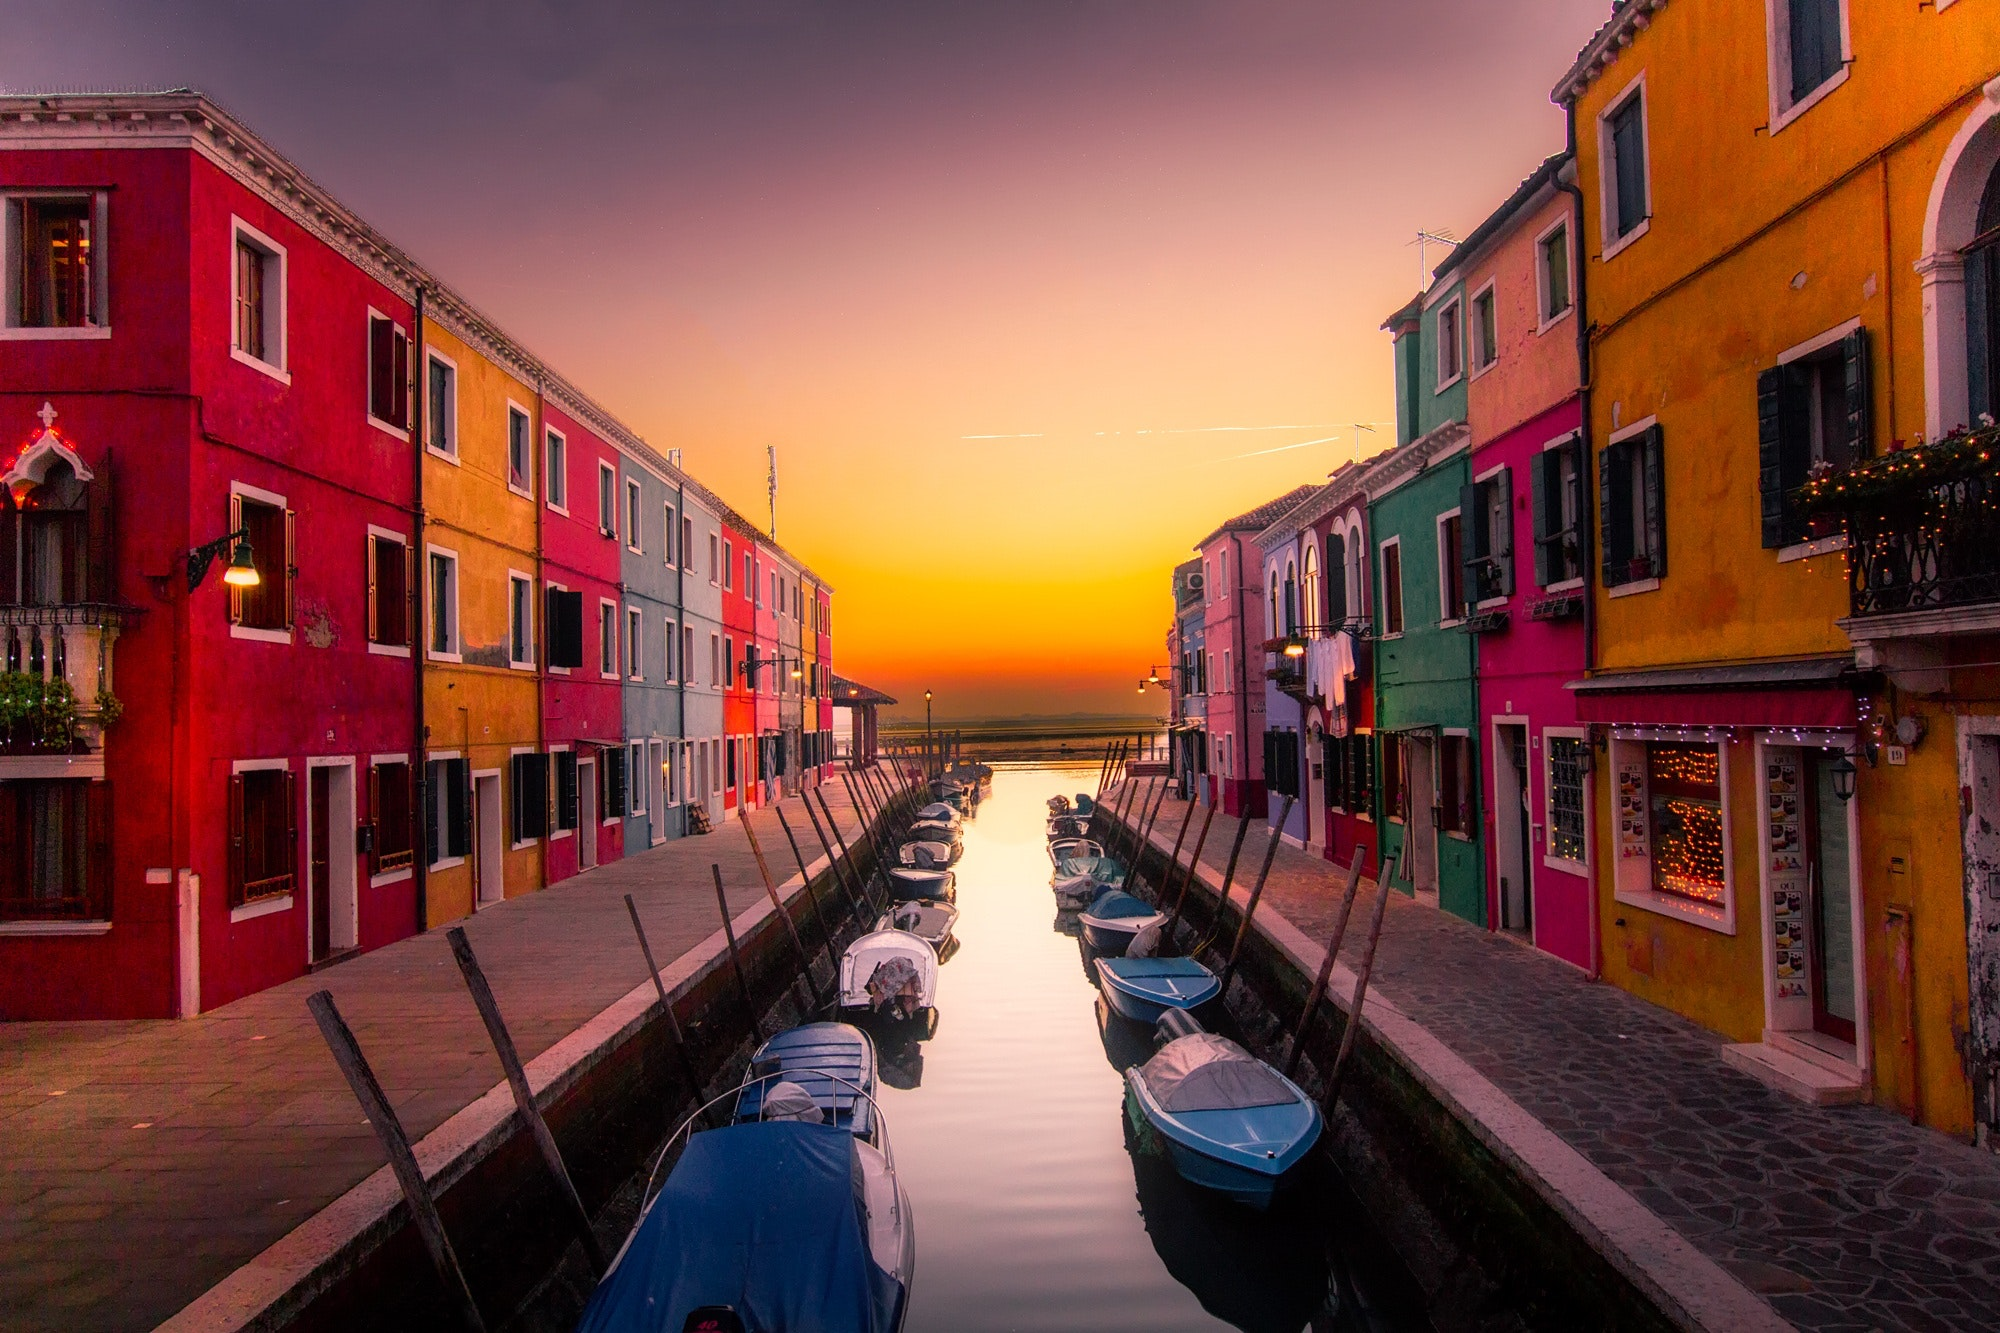 architecture-boats-buildings-417344